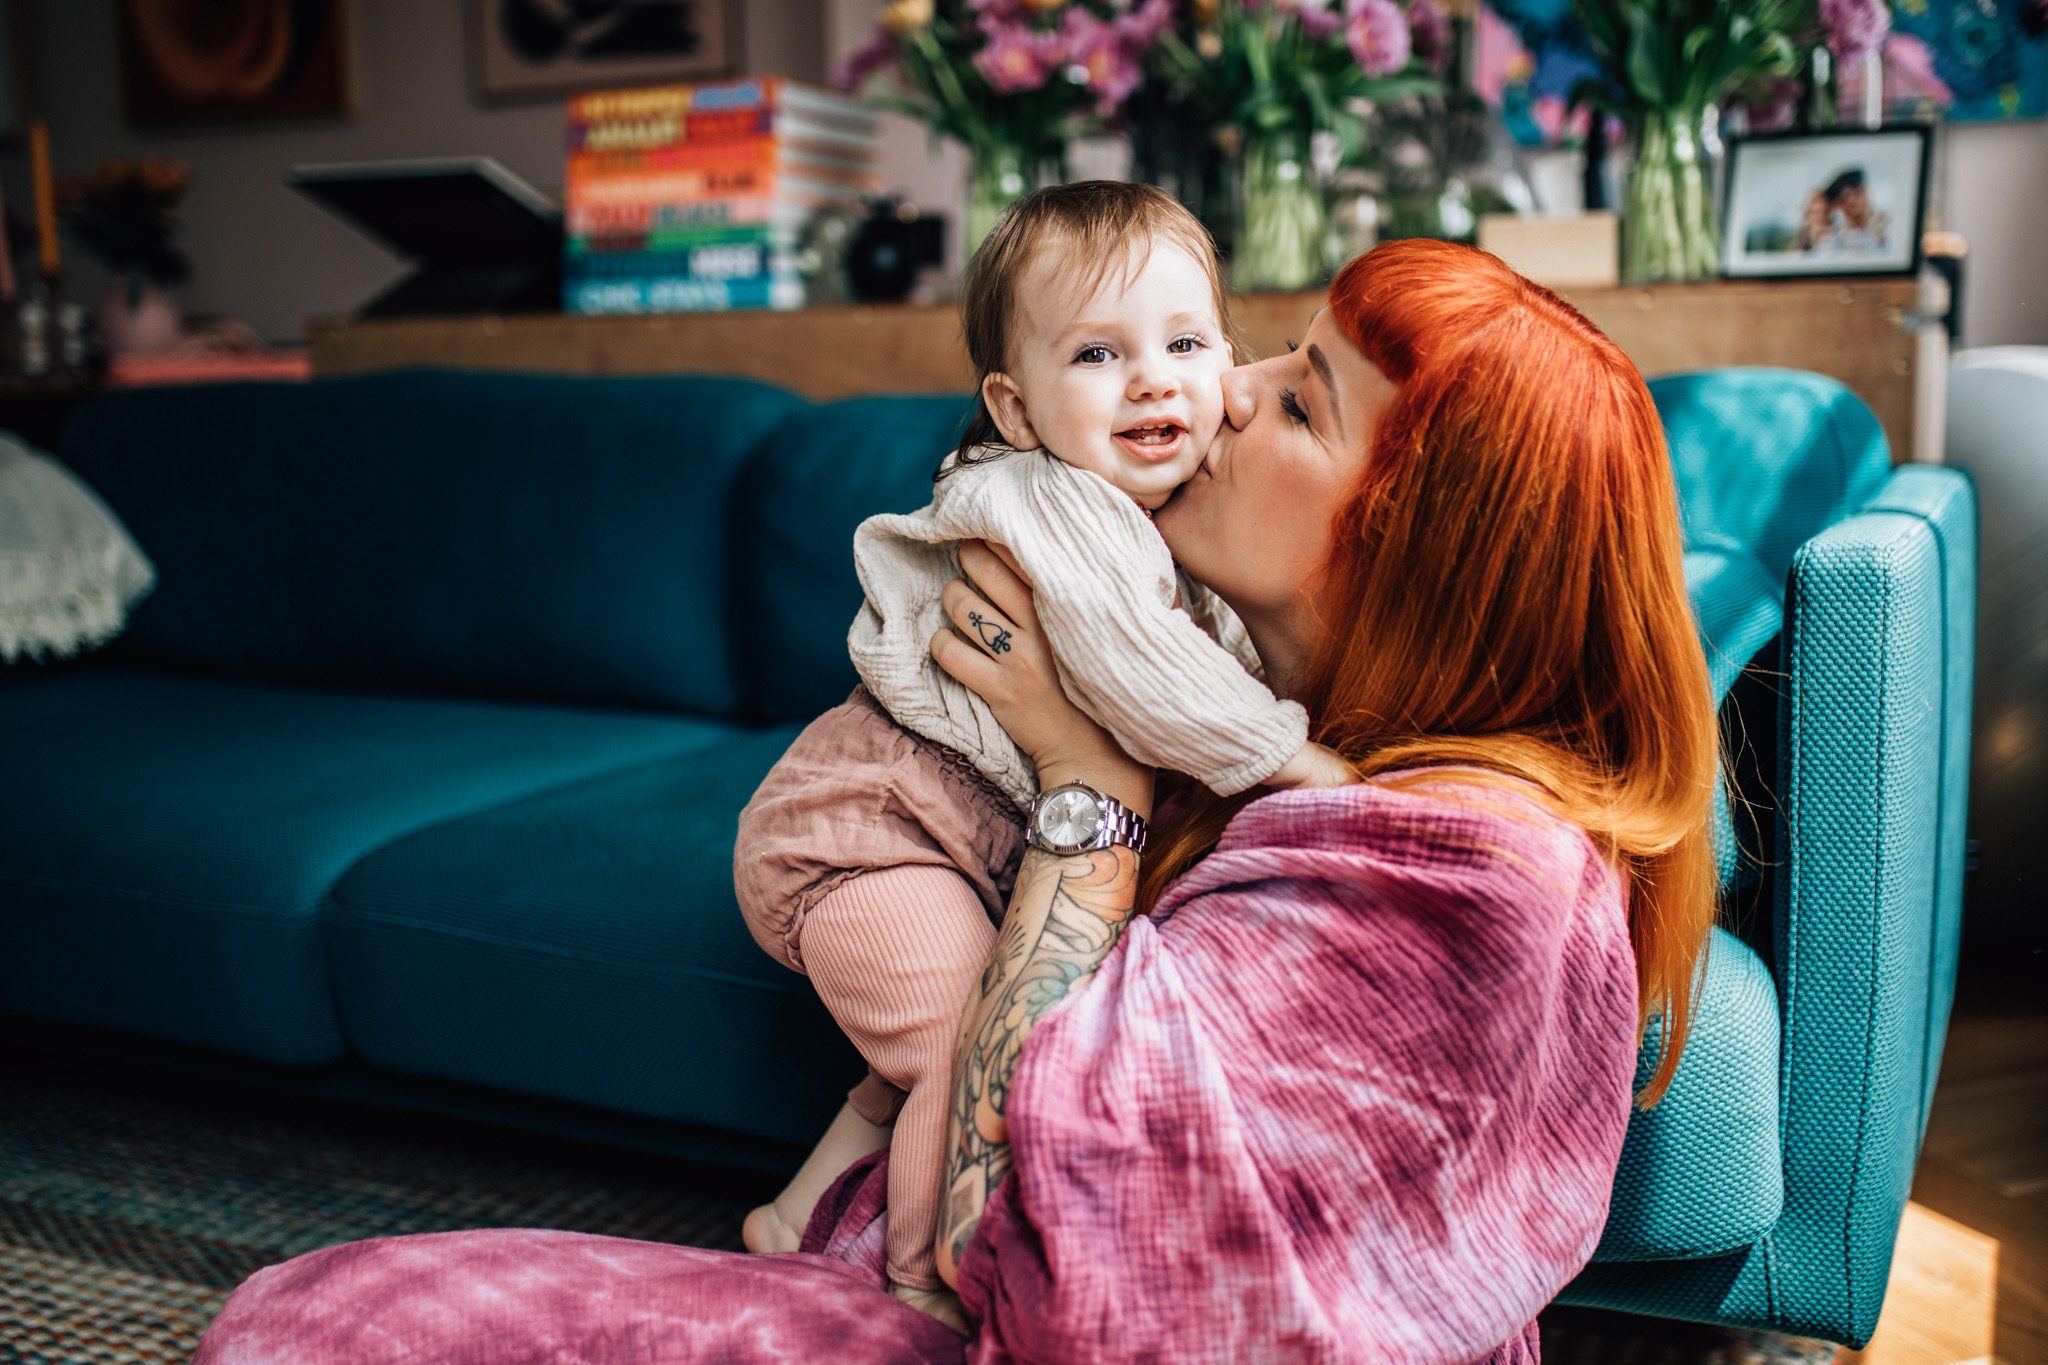 Mom kissing her little girl on her cheek. They're sitting on the floor of their livigroom. Mom is wearing a purple hand dyed dress, she has amazing orange hair and some tattoos on her arm and hand. The photoshoot took place in their home, in Amsterdam.